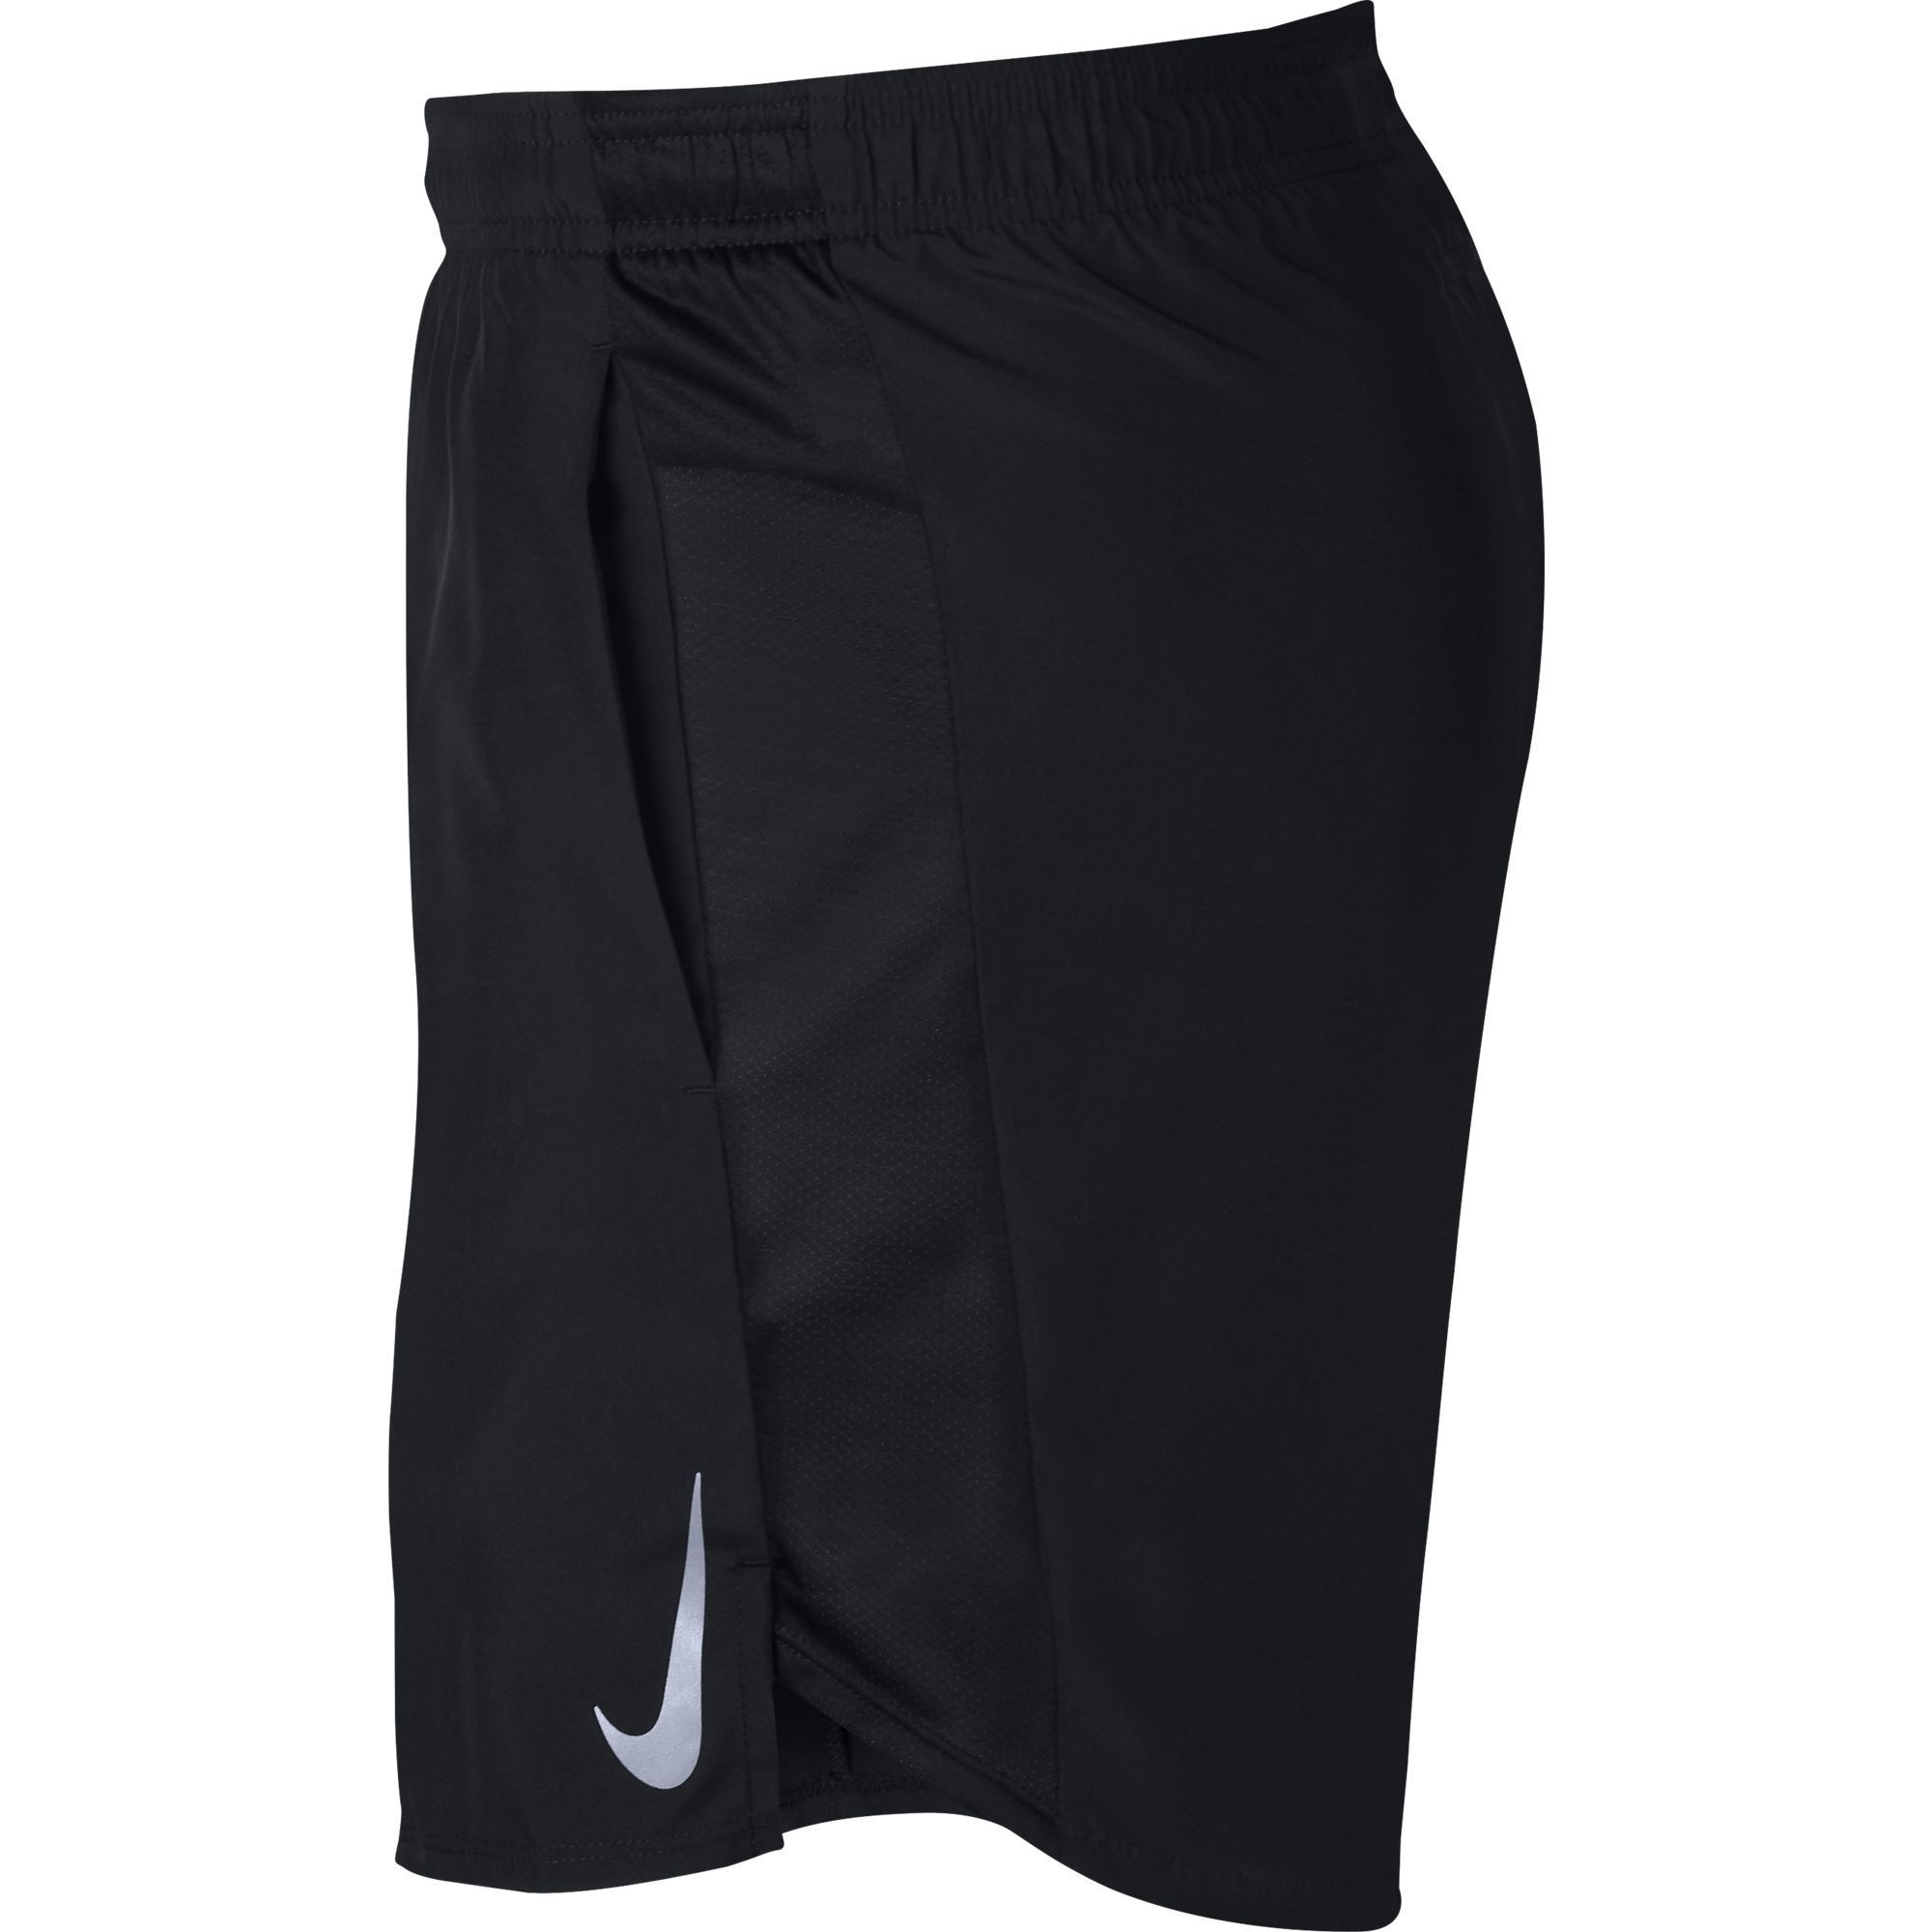 NIKE Шорты мужские M NK CHLLGR SHORT 5IN BF, black. Фото N2